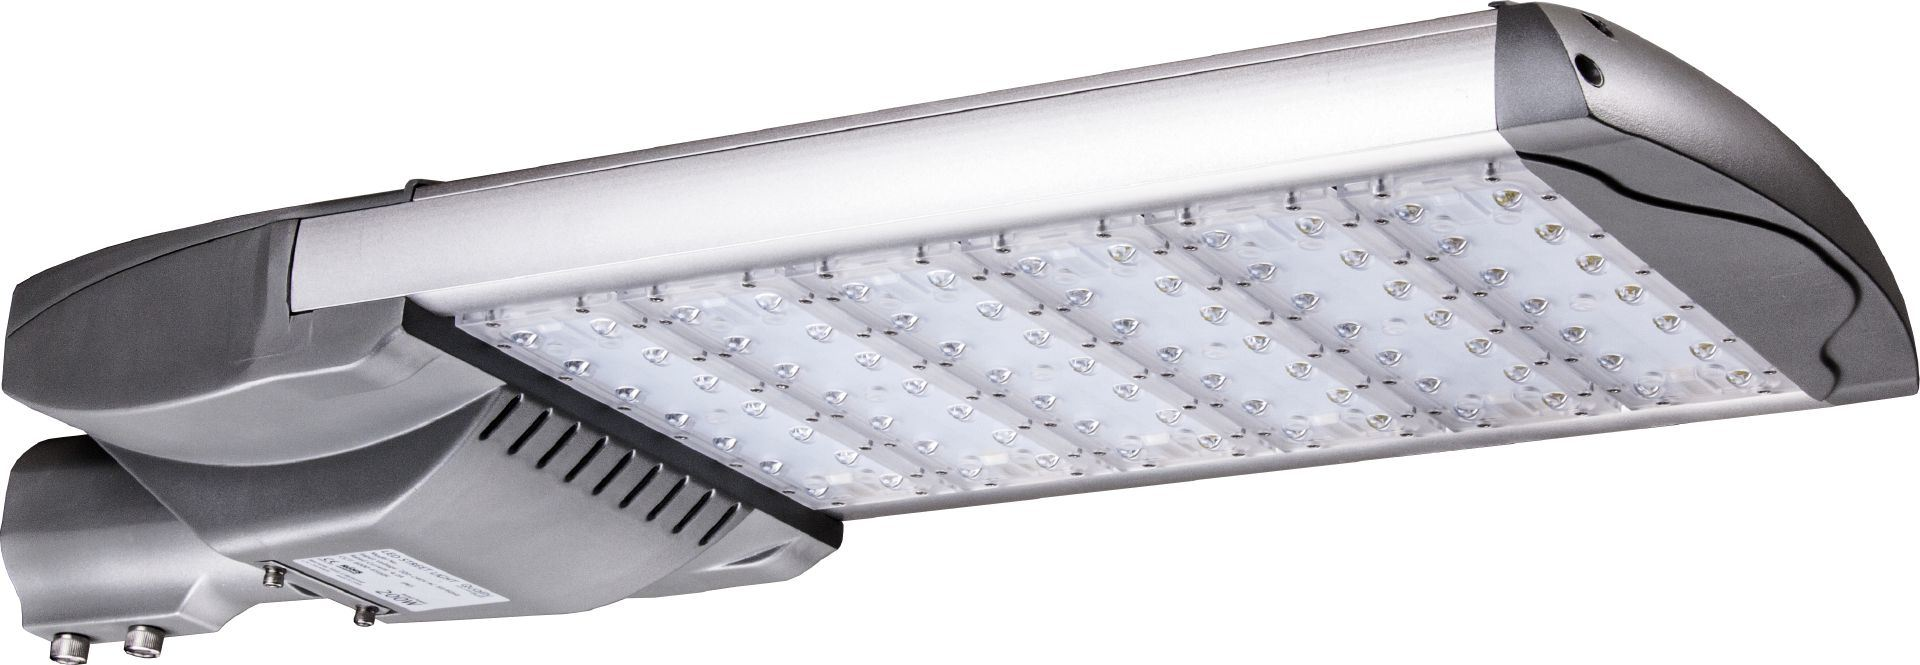 40W to 280W Ik10 Outdoor LED Street Lighting with Ce RoHS CB GS TUV Mark